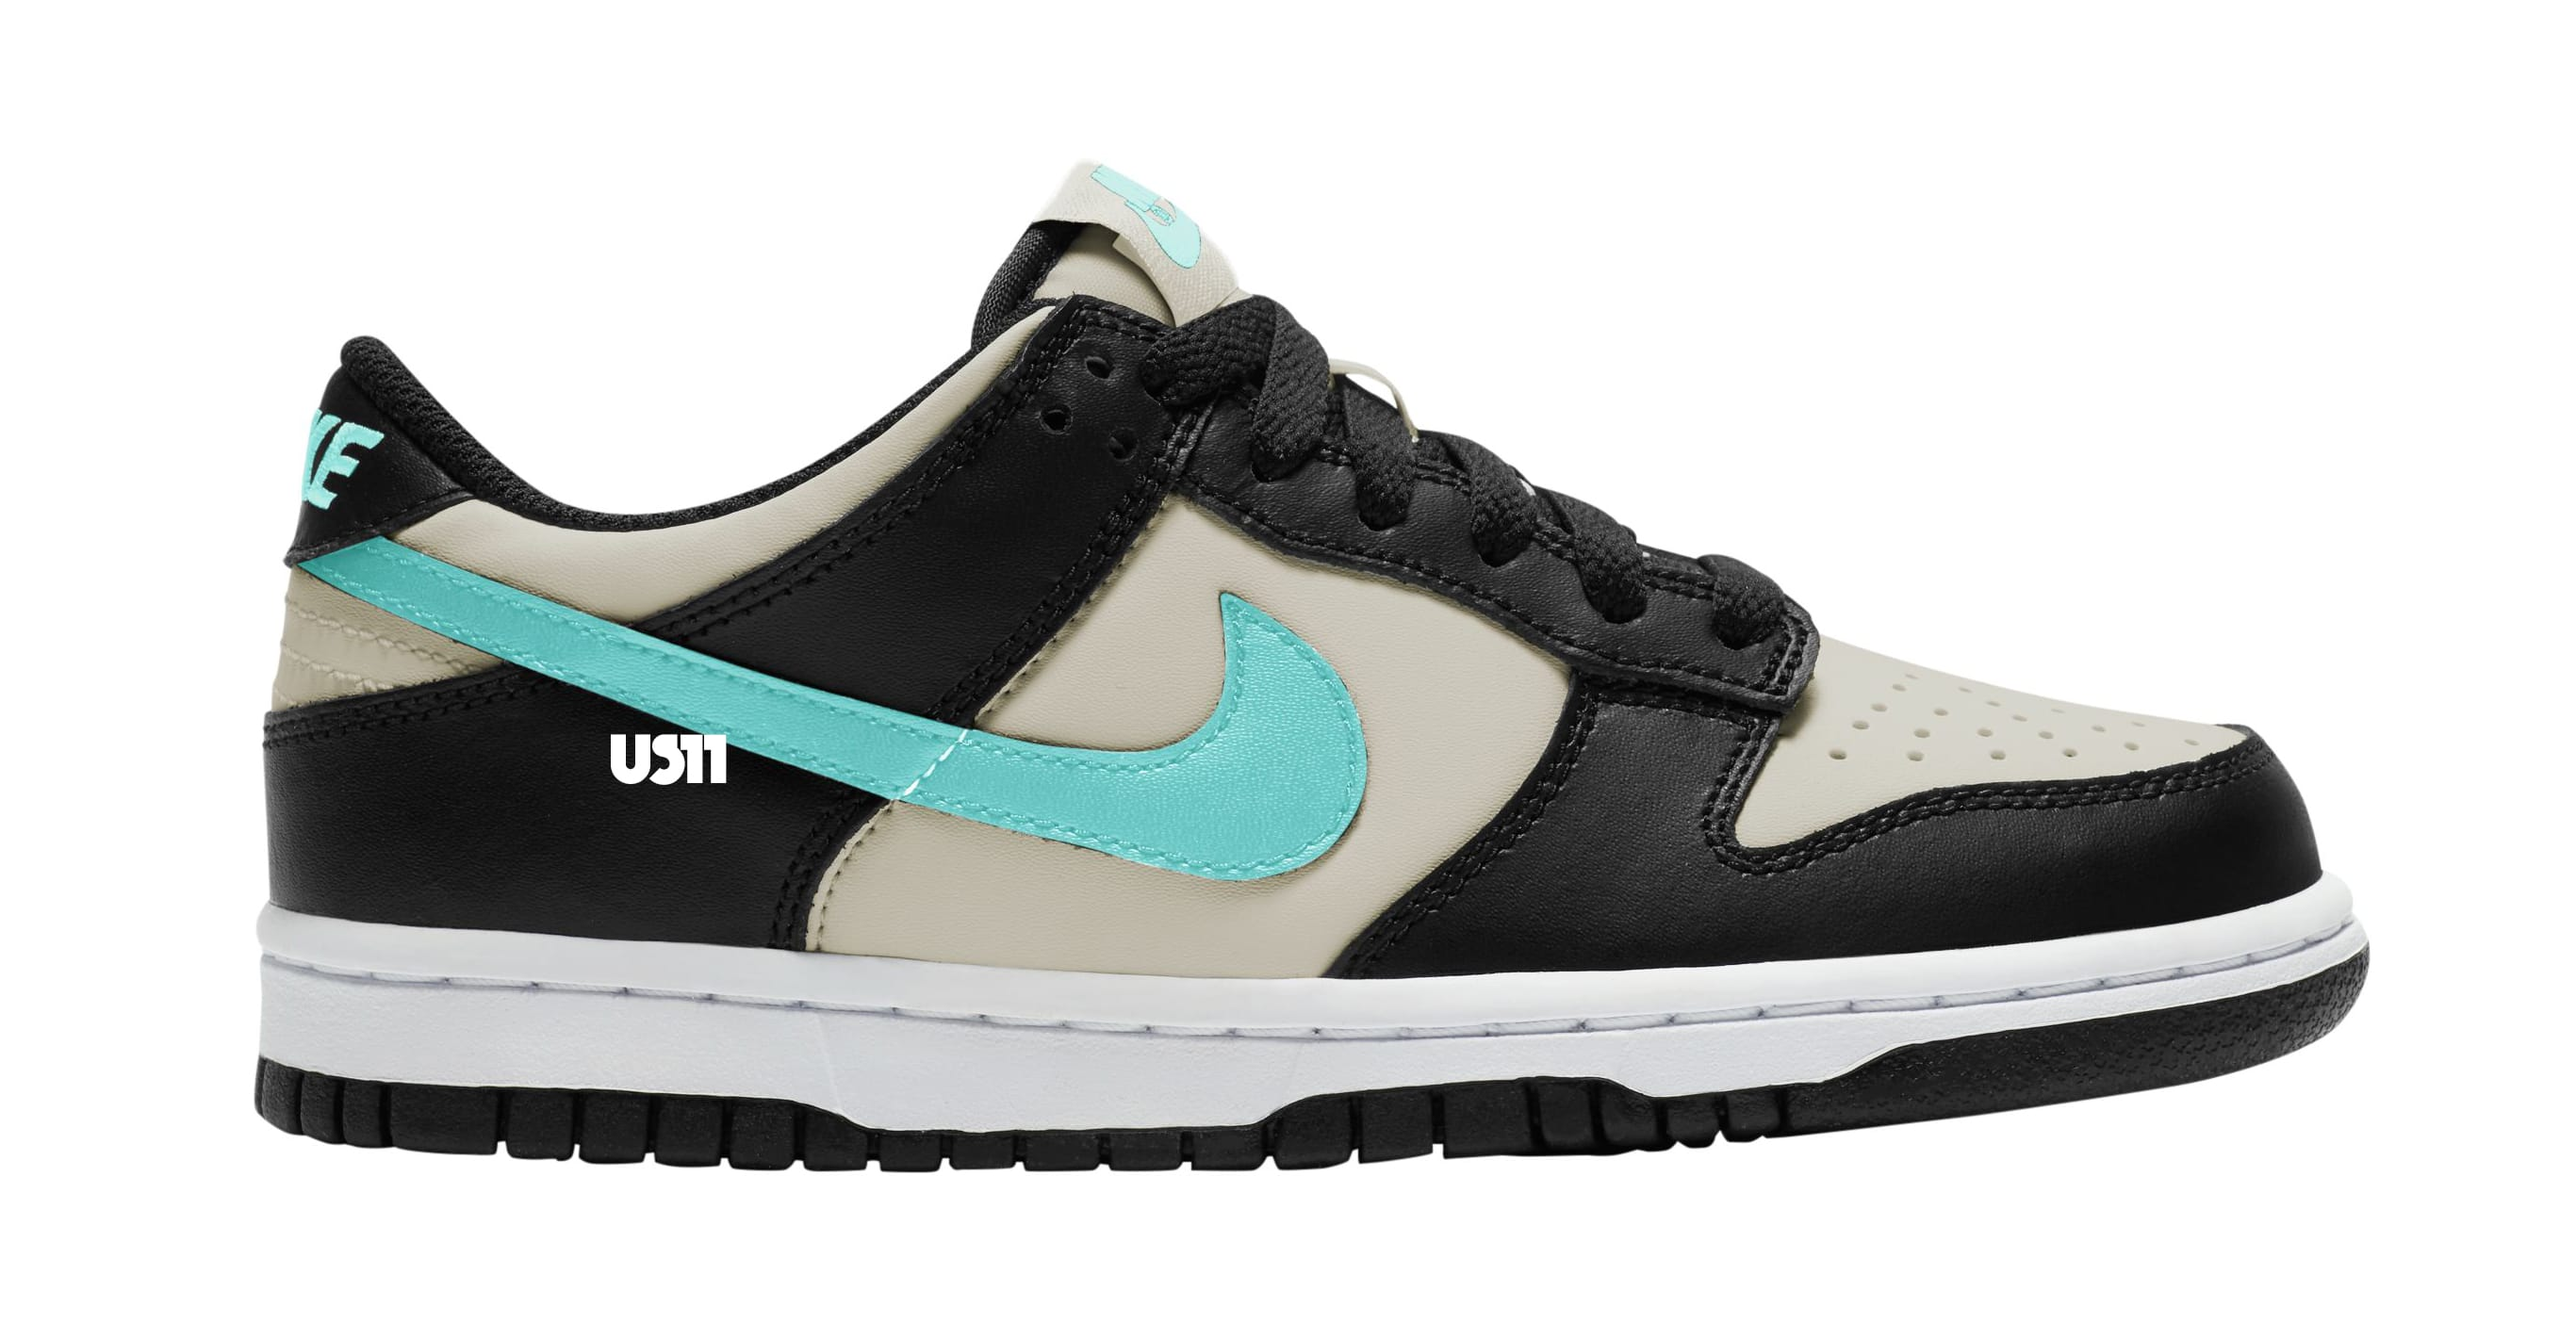 Nike Dunk Low GS Tan/Black/Teal Lateral